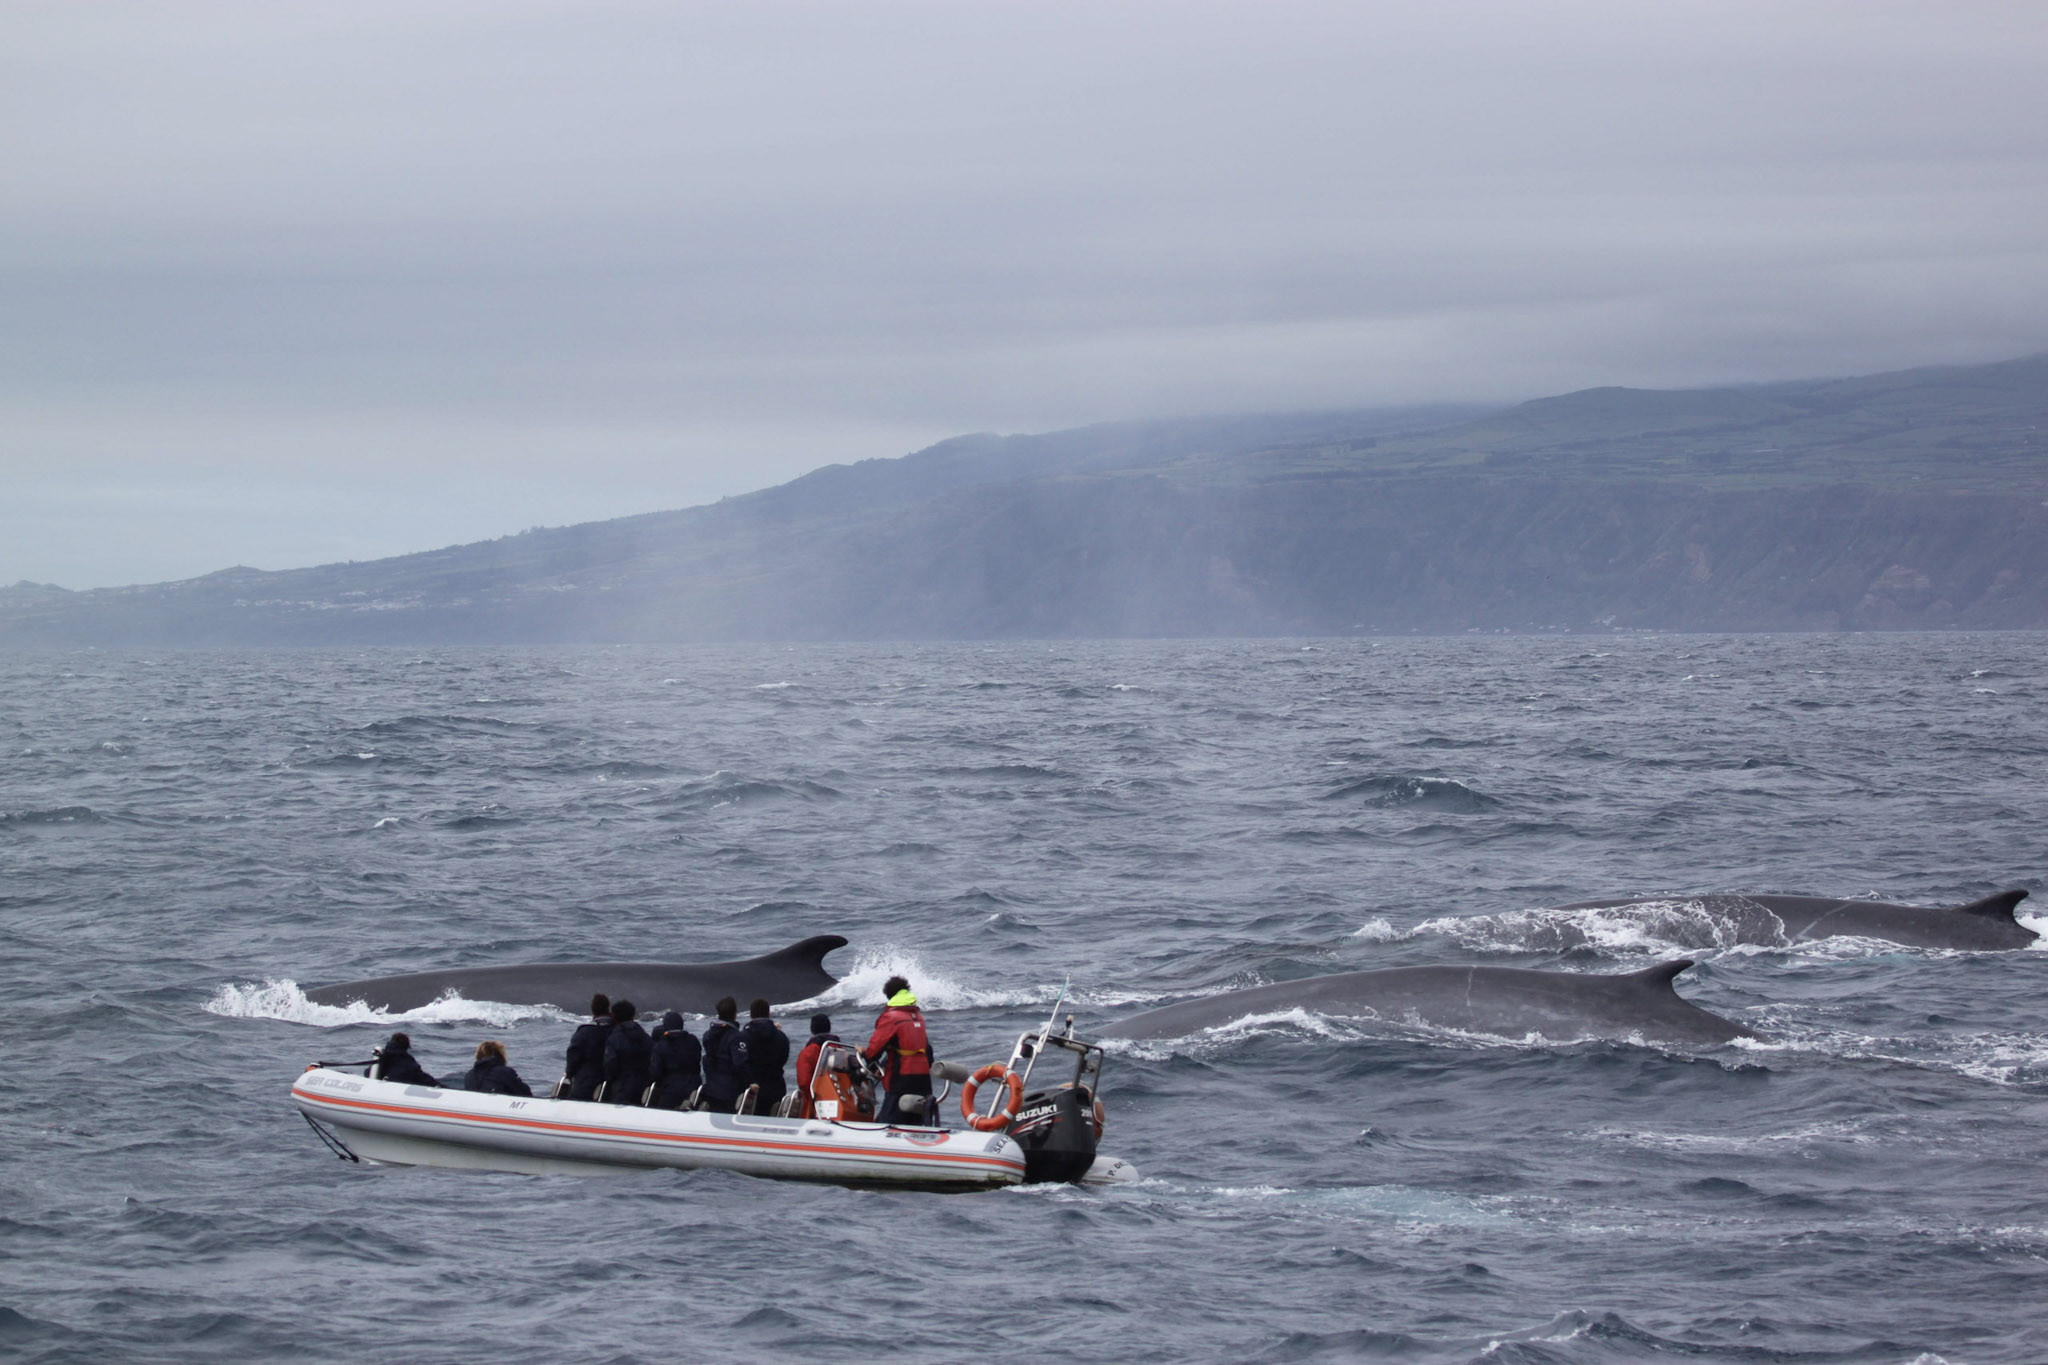 New tool launched to promote sustainable whale watching